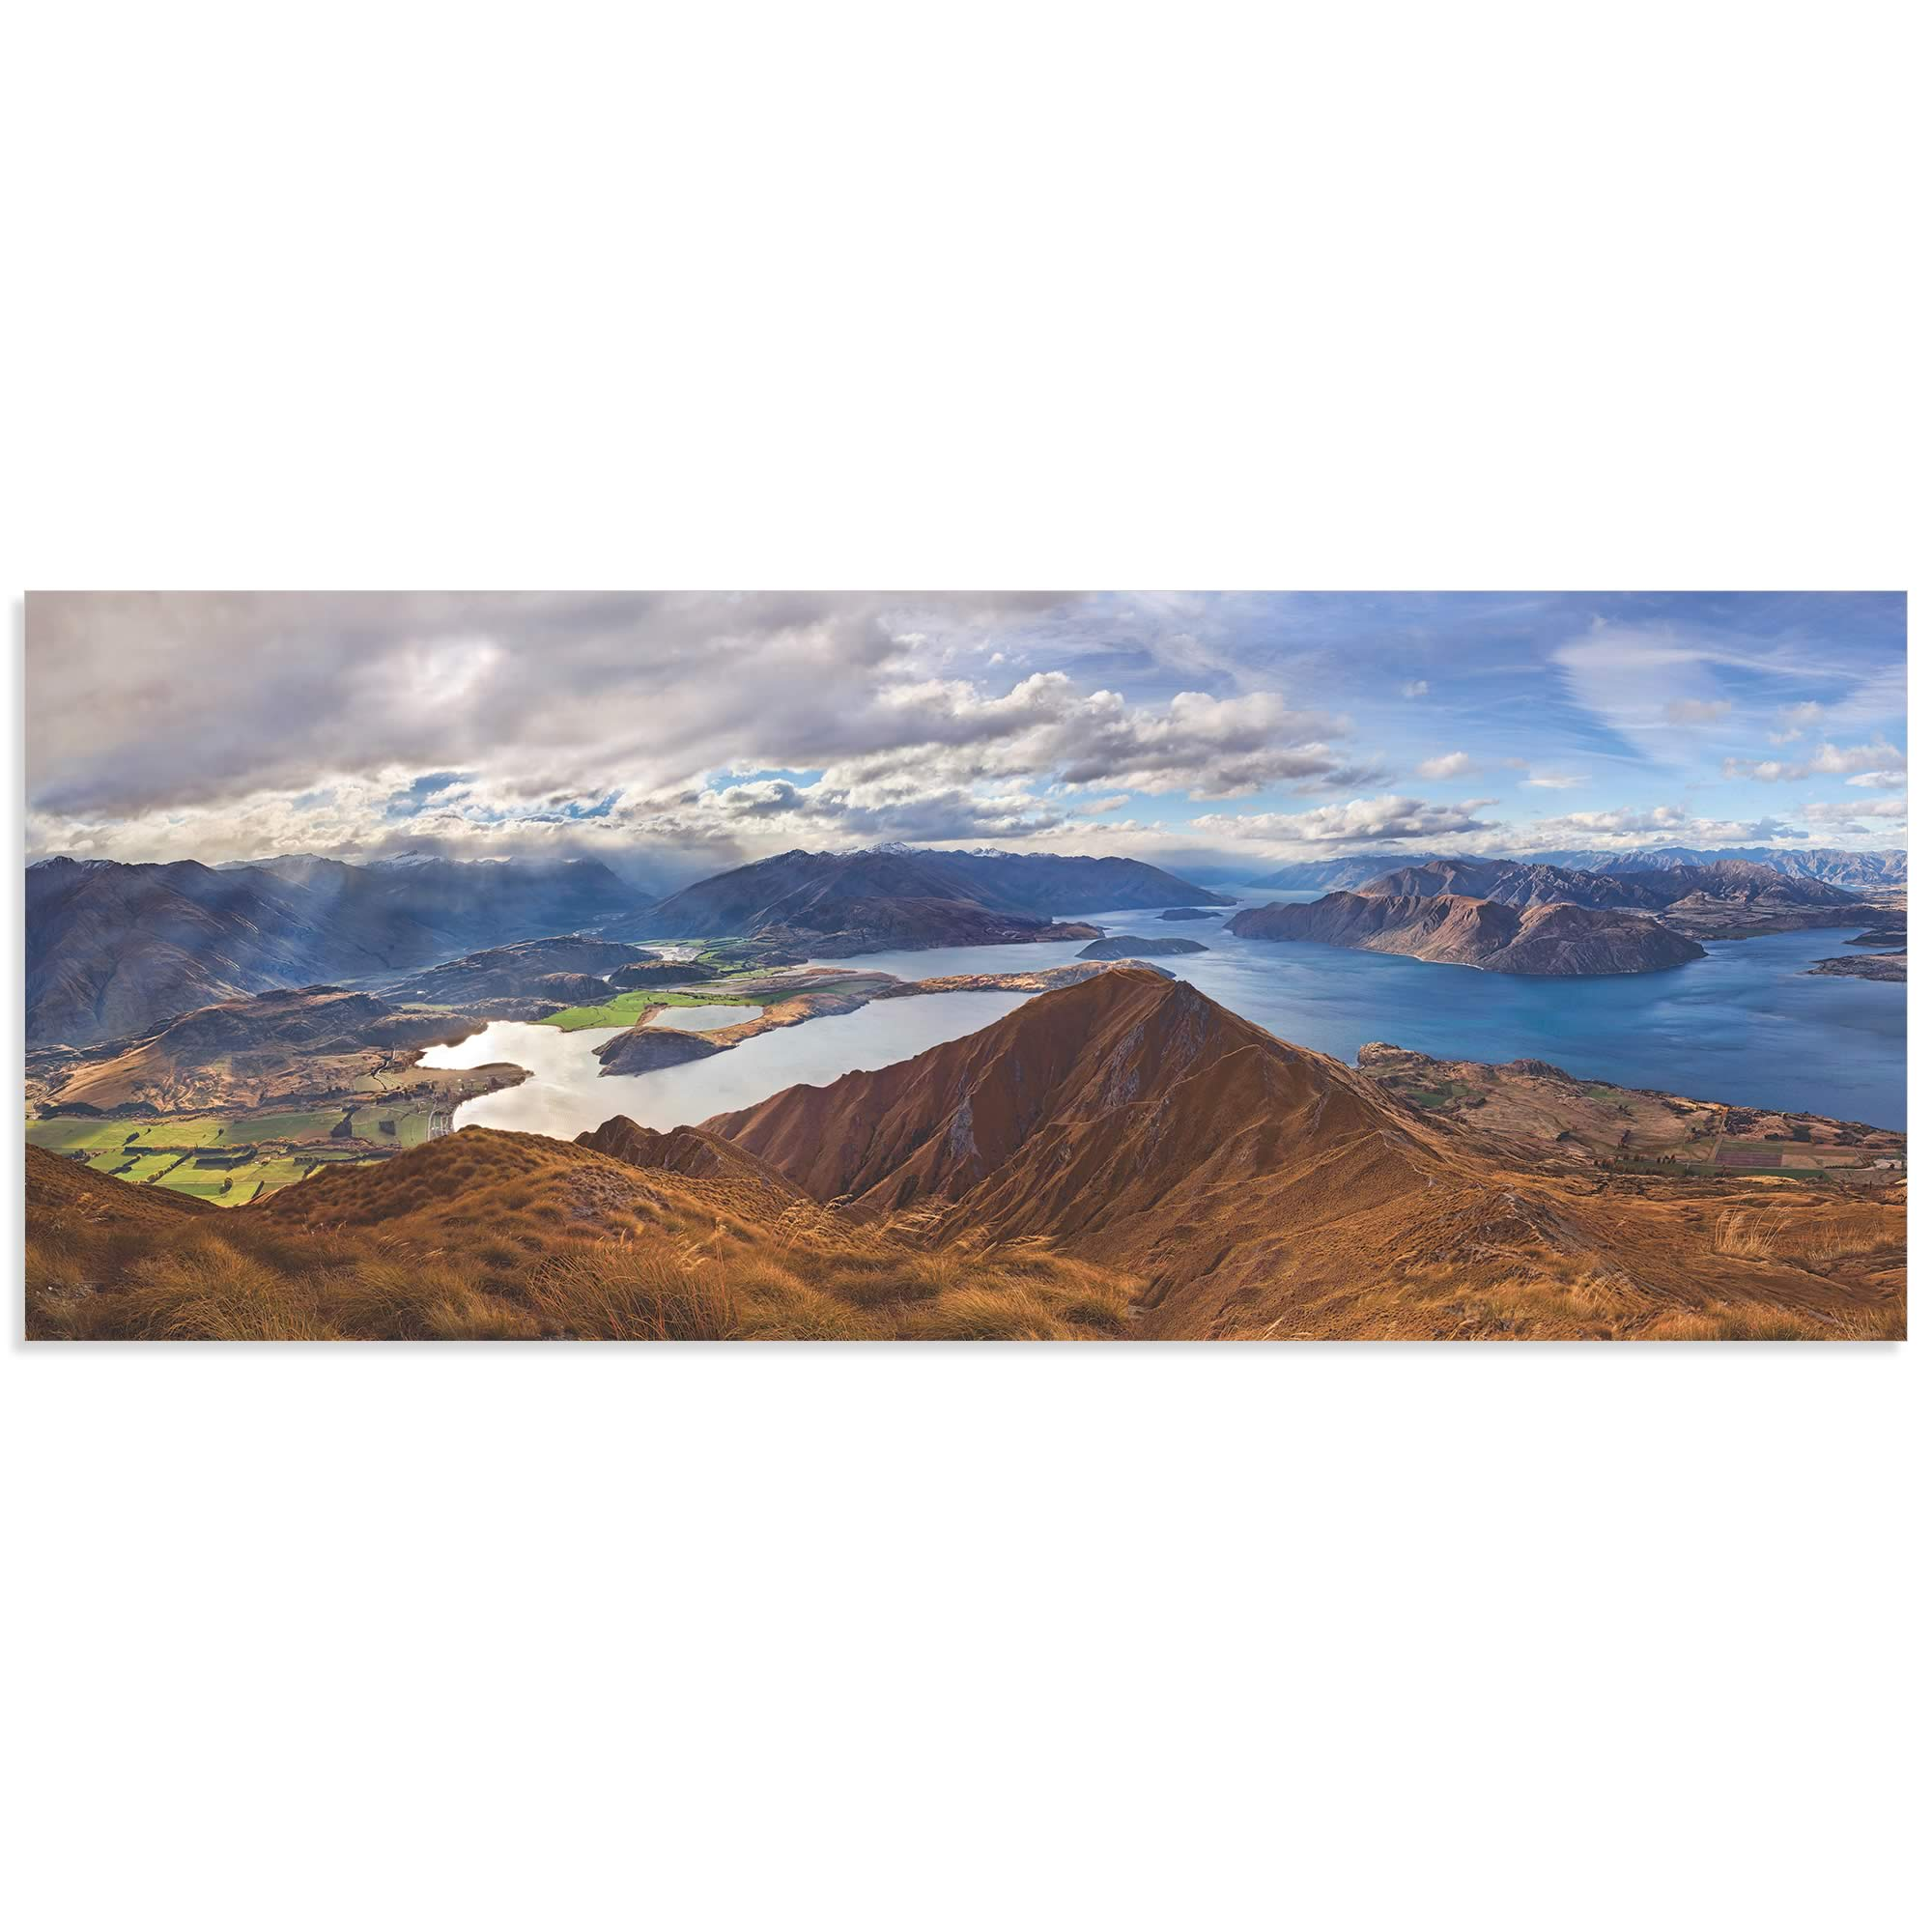 Roys Peak by Yan Zhang - Landscape Art on Metal or Acrylic